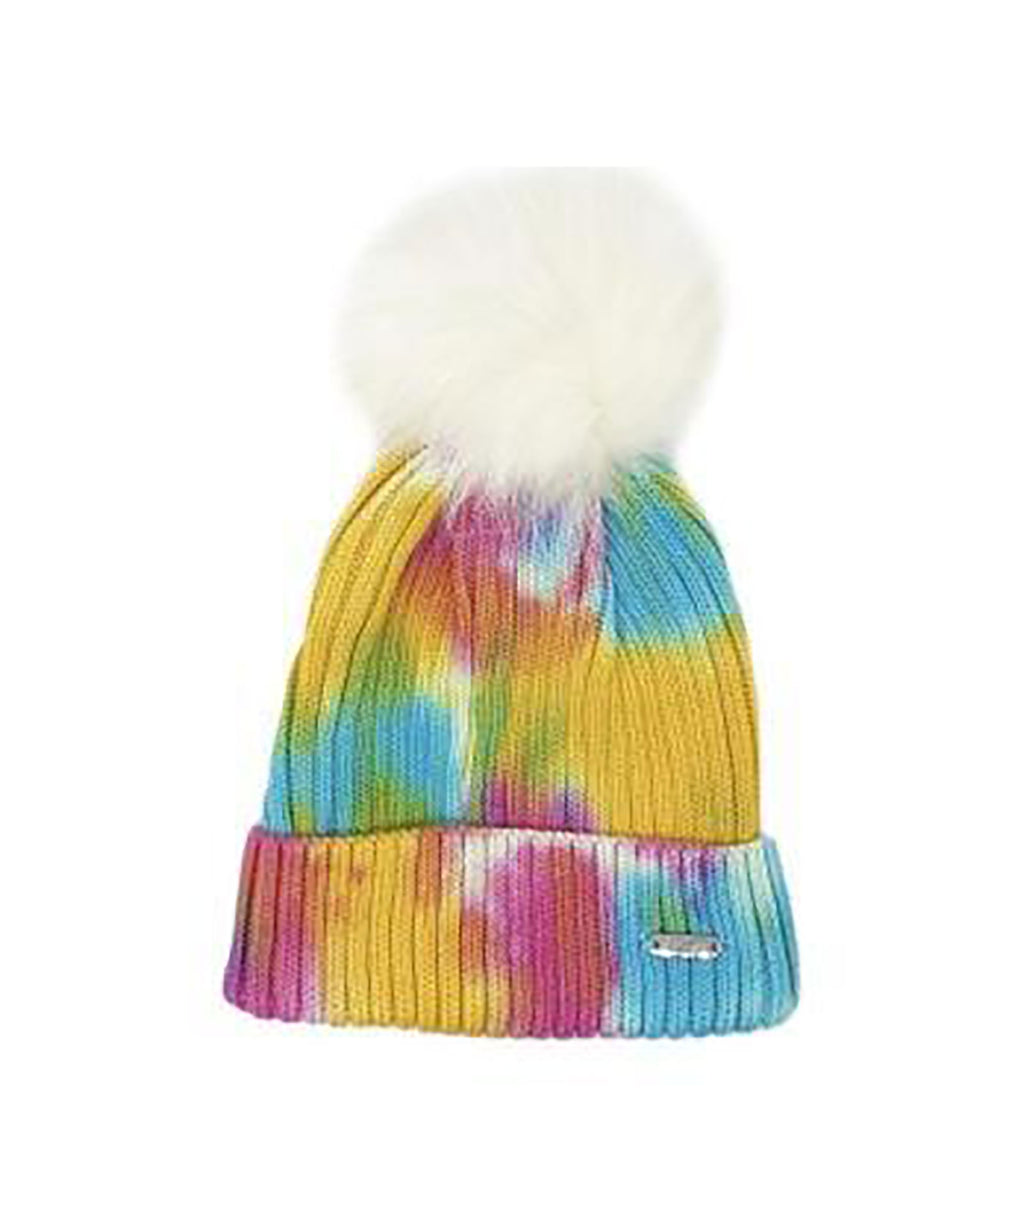 Bari Lynn Tie Dye Knit Hats With Poof